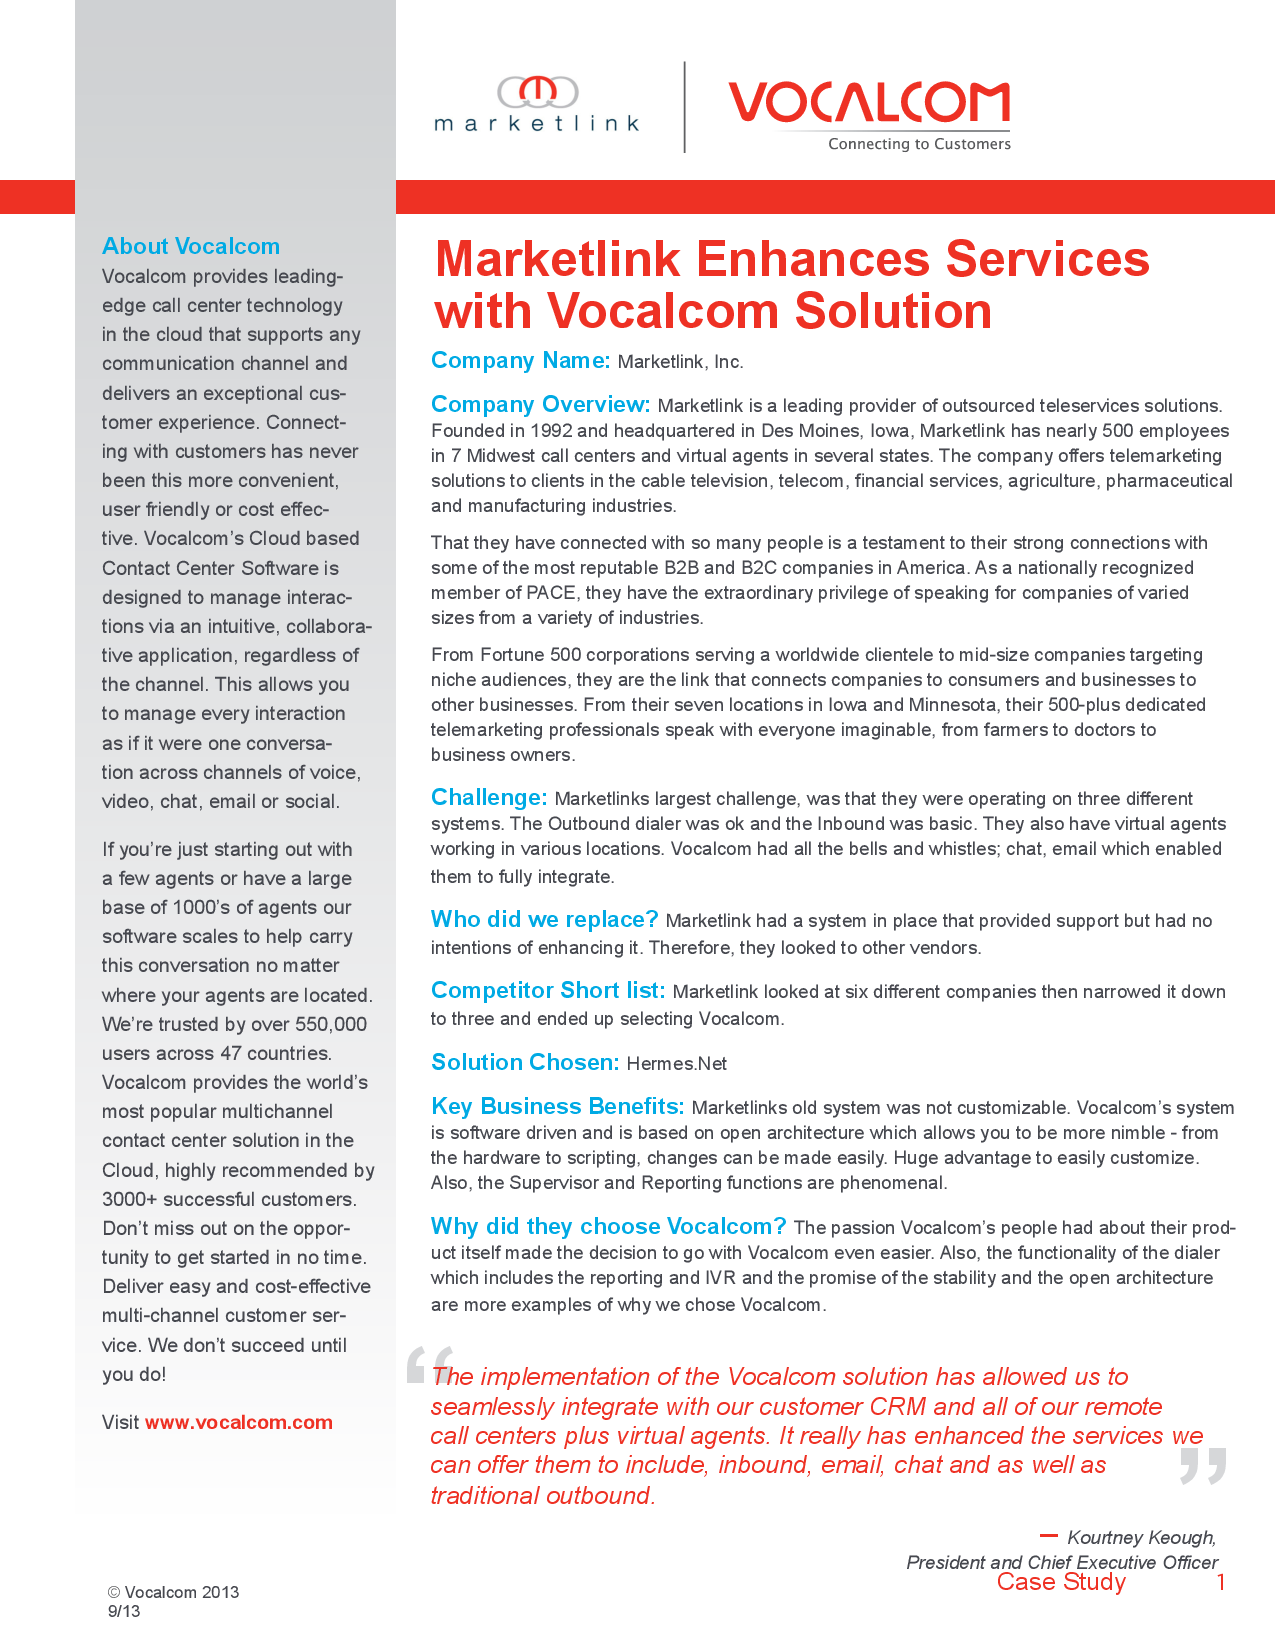 Contact Center Software – Marketlink Enhances Services with